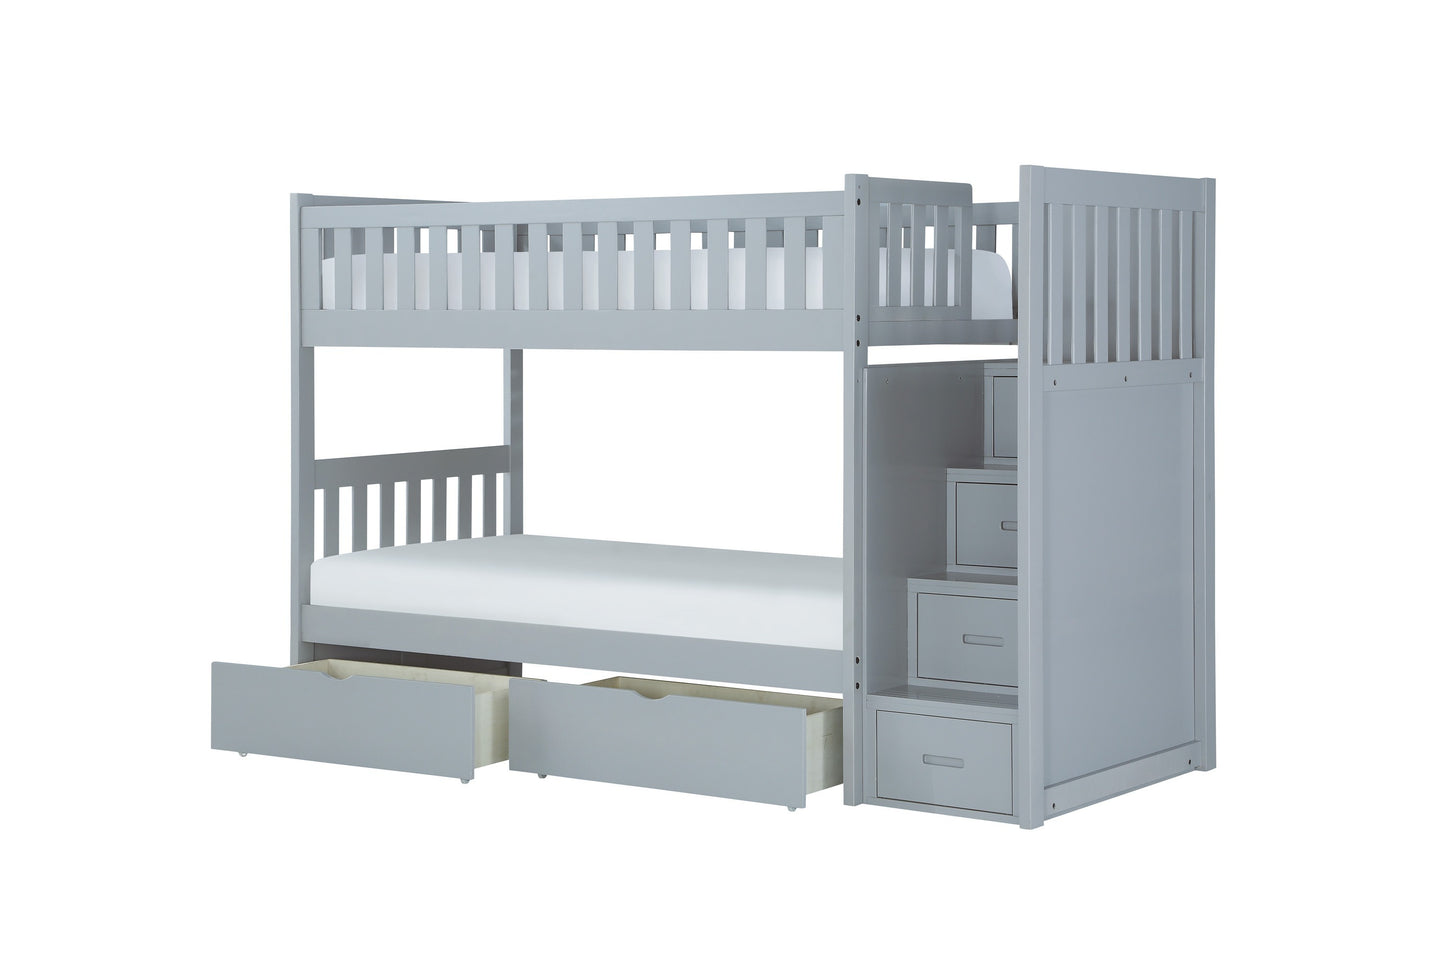 Homelegance Orion Gray Wood Finish Bunk Bed With Drawer